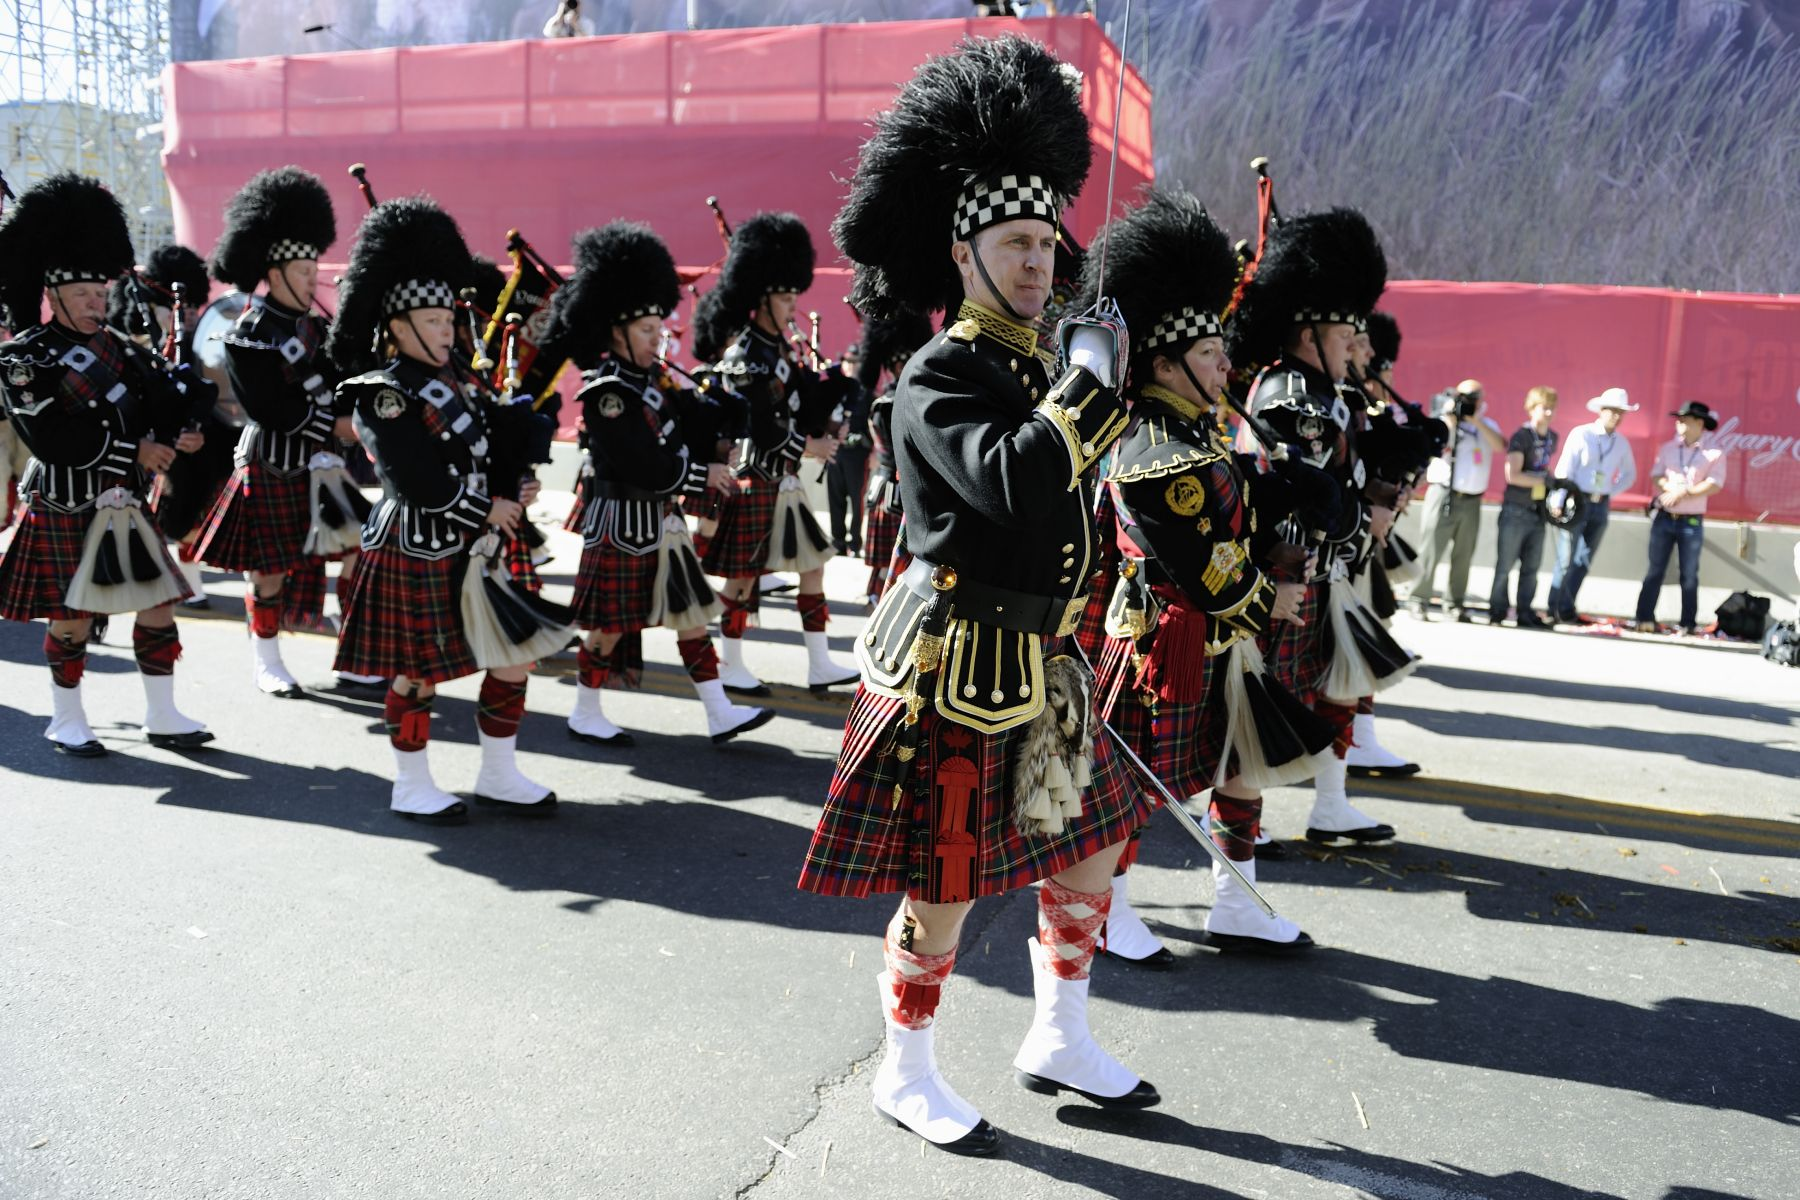 Pipers entertained the crowds gathered in the streets of the City of Calgary.